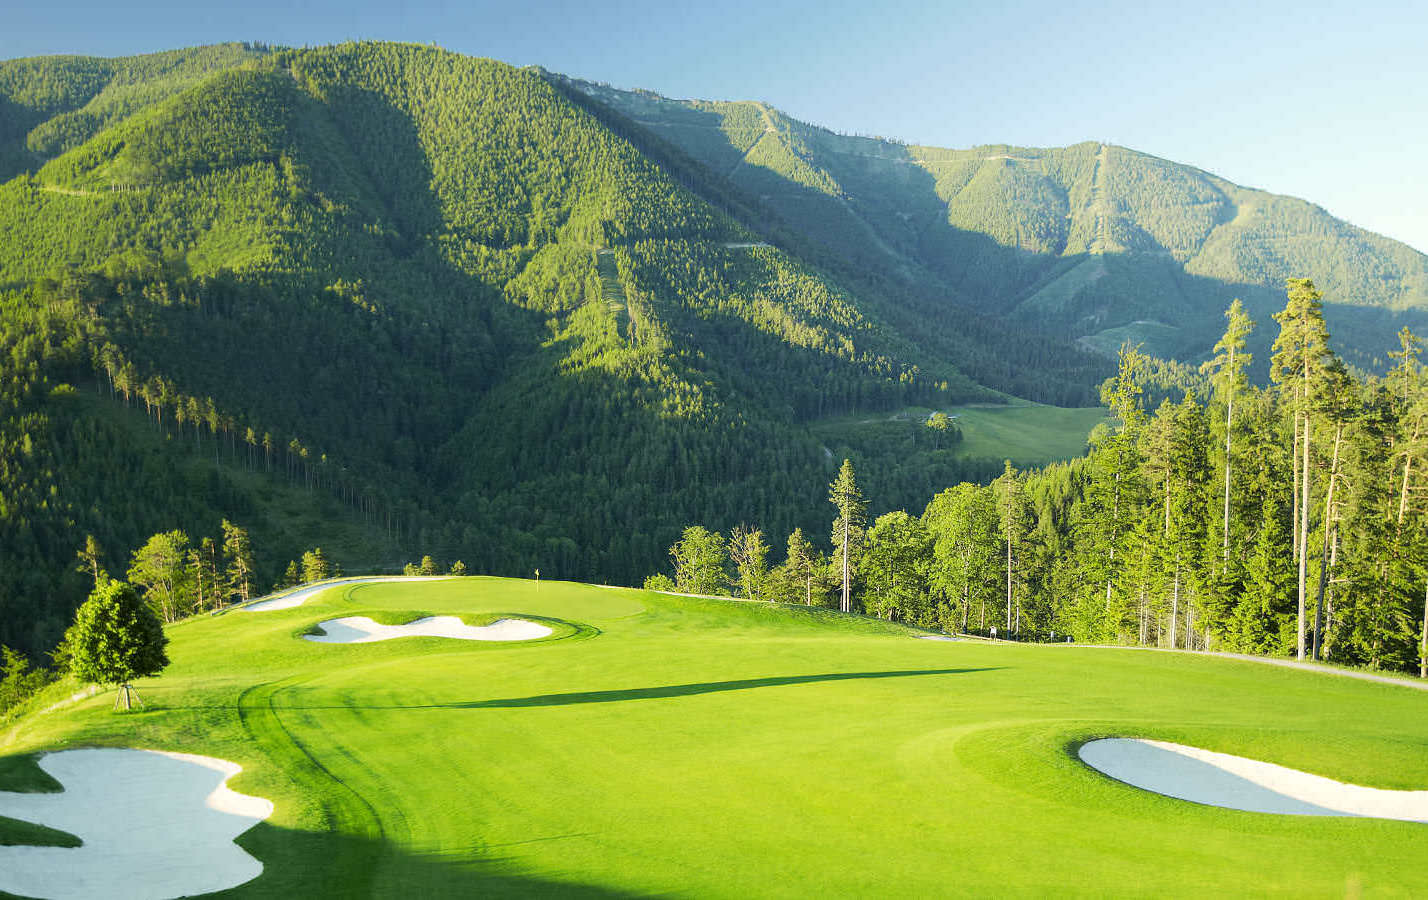 Golf Club Adamstal Franz Wittmann, golf in austria, mountain golf